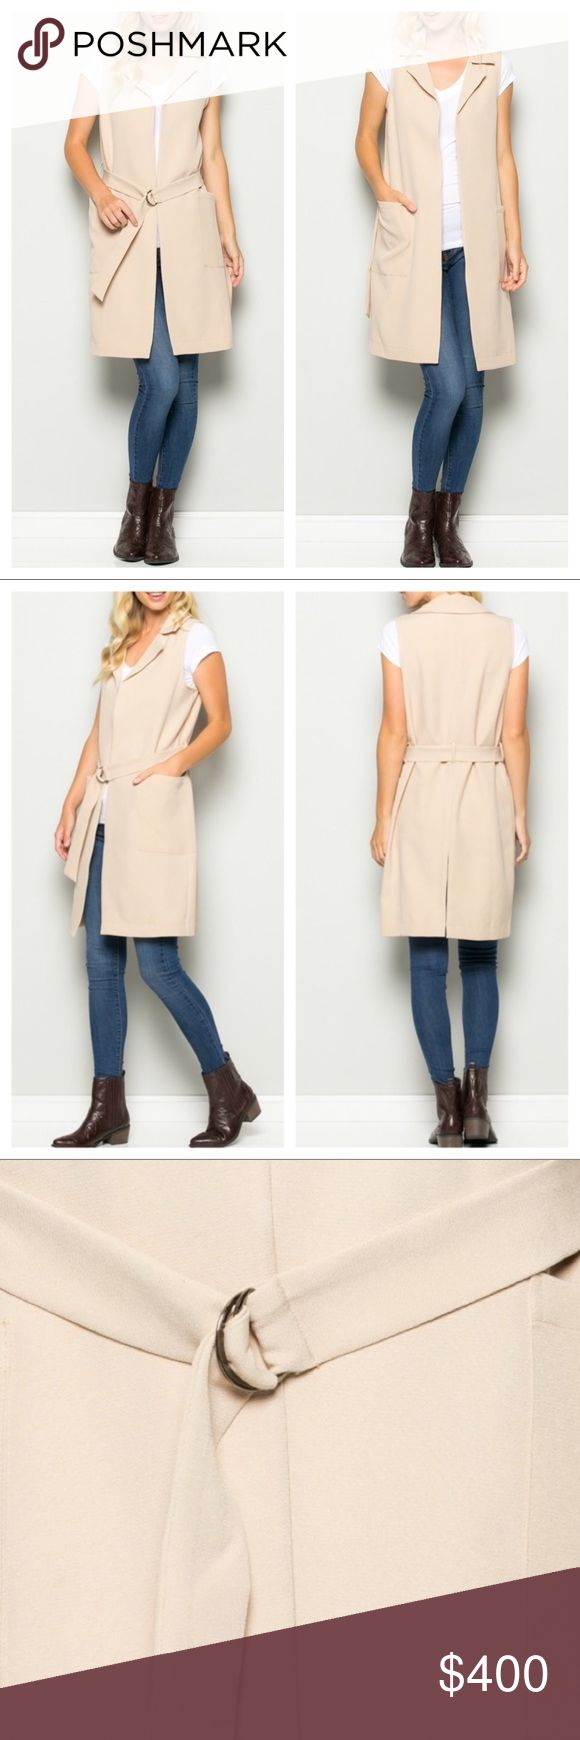 🎯JUST IN ♨️ LIGHT TAN LONG VEST, SUPER COOL! Perfect bridge from summer to fall (and year-round, in some climates!): Light tan long vest made of 95% rayon and 5% Spandex for some excellent stretch and movement. Pockets! This beautifully neutral vest gets an upscale lift with lapels and a belt to offer you the perfect finishing touch for most any outfit - work or play.  A slit up the bottom back adds movement and flow. Chambray top for styling only October Love Jackets & Coats Vests